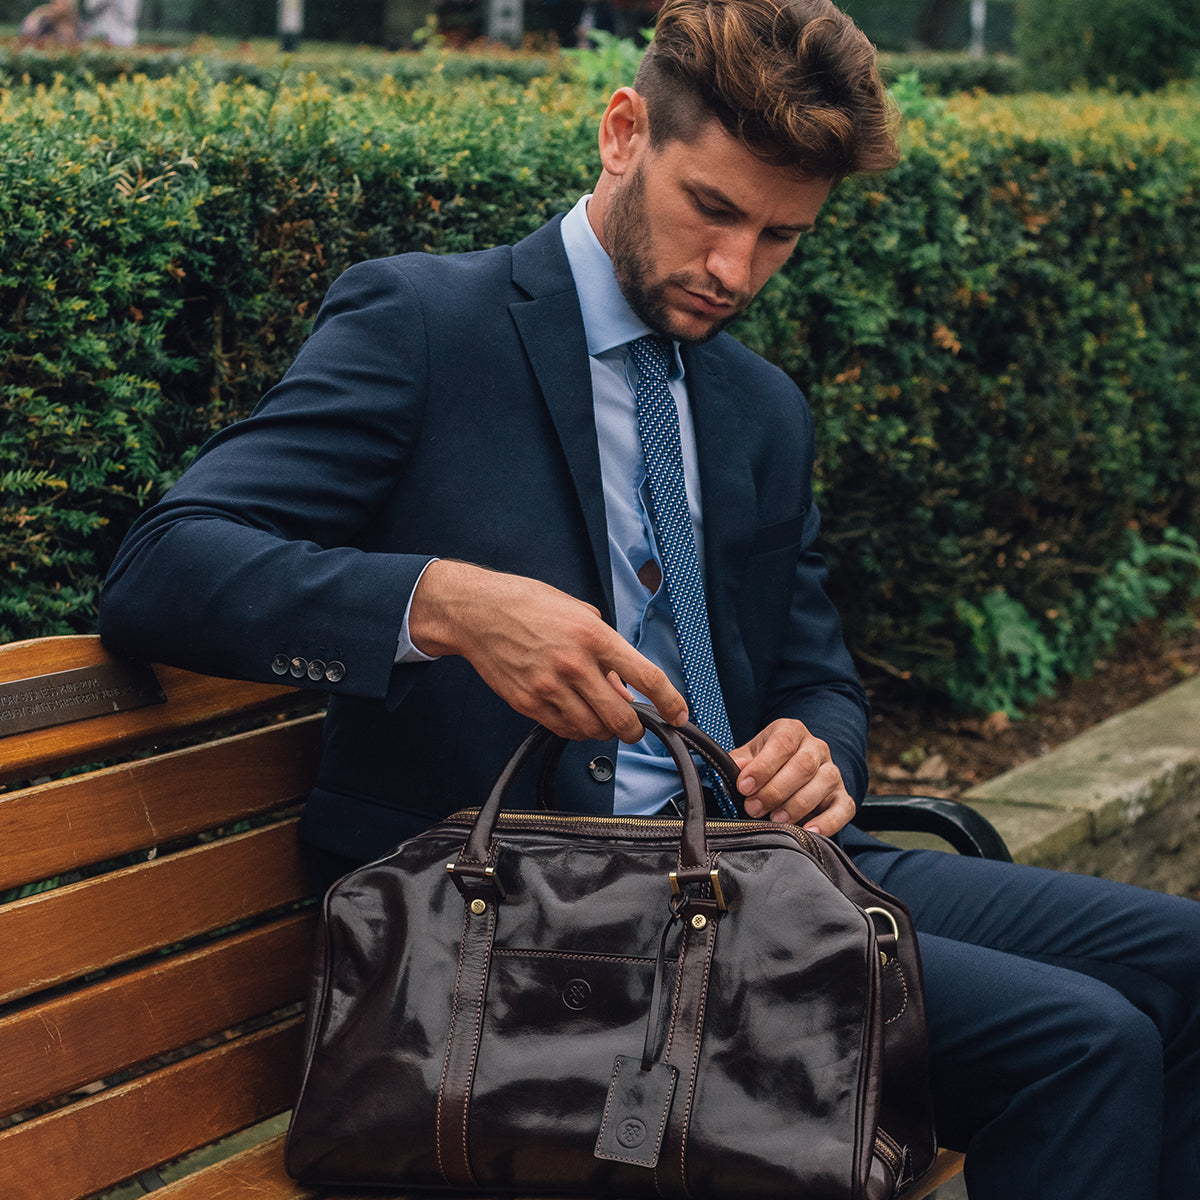 Image 9 of the 'Flero' Compact Black Veg-Tanned Leather Holdall